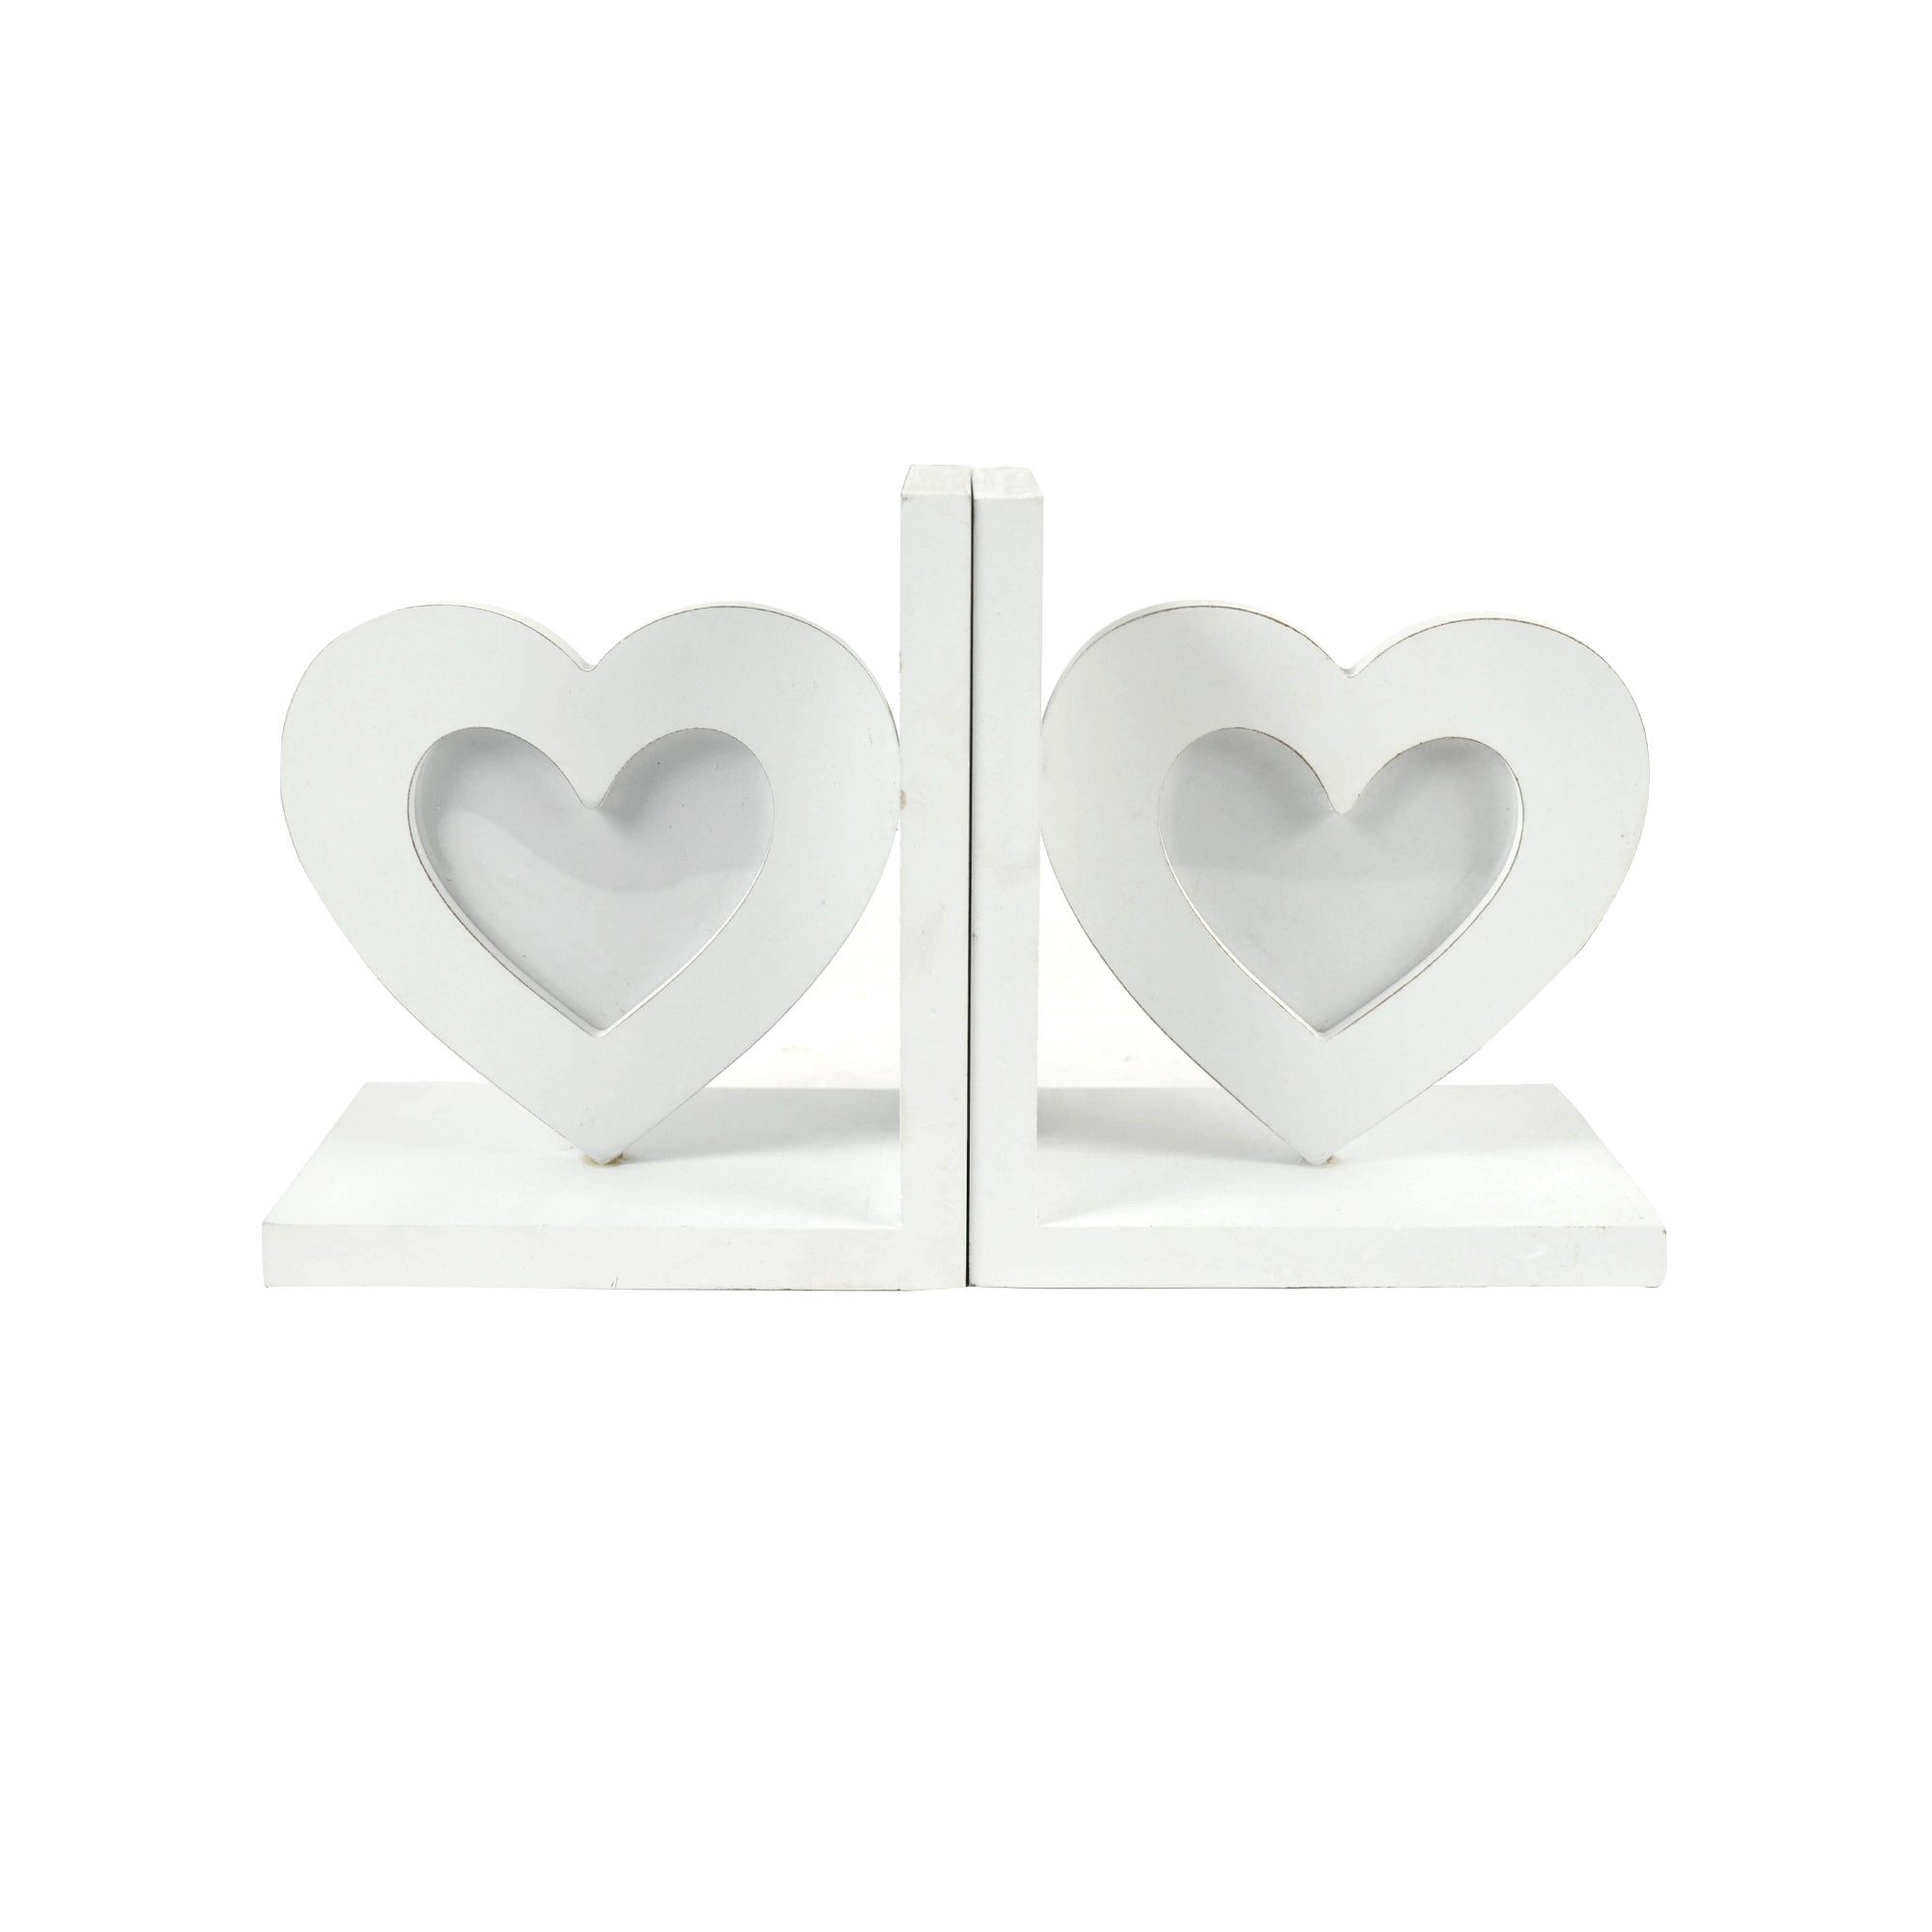 White Heart Photo Frame Bookends